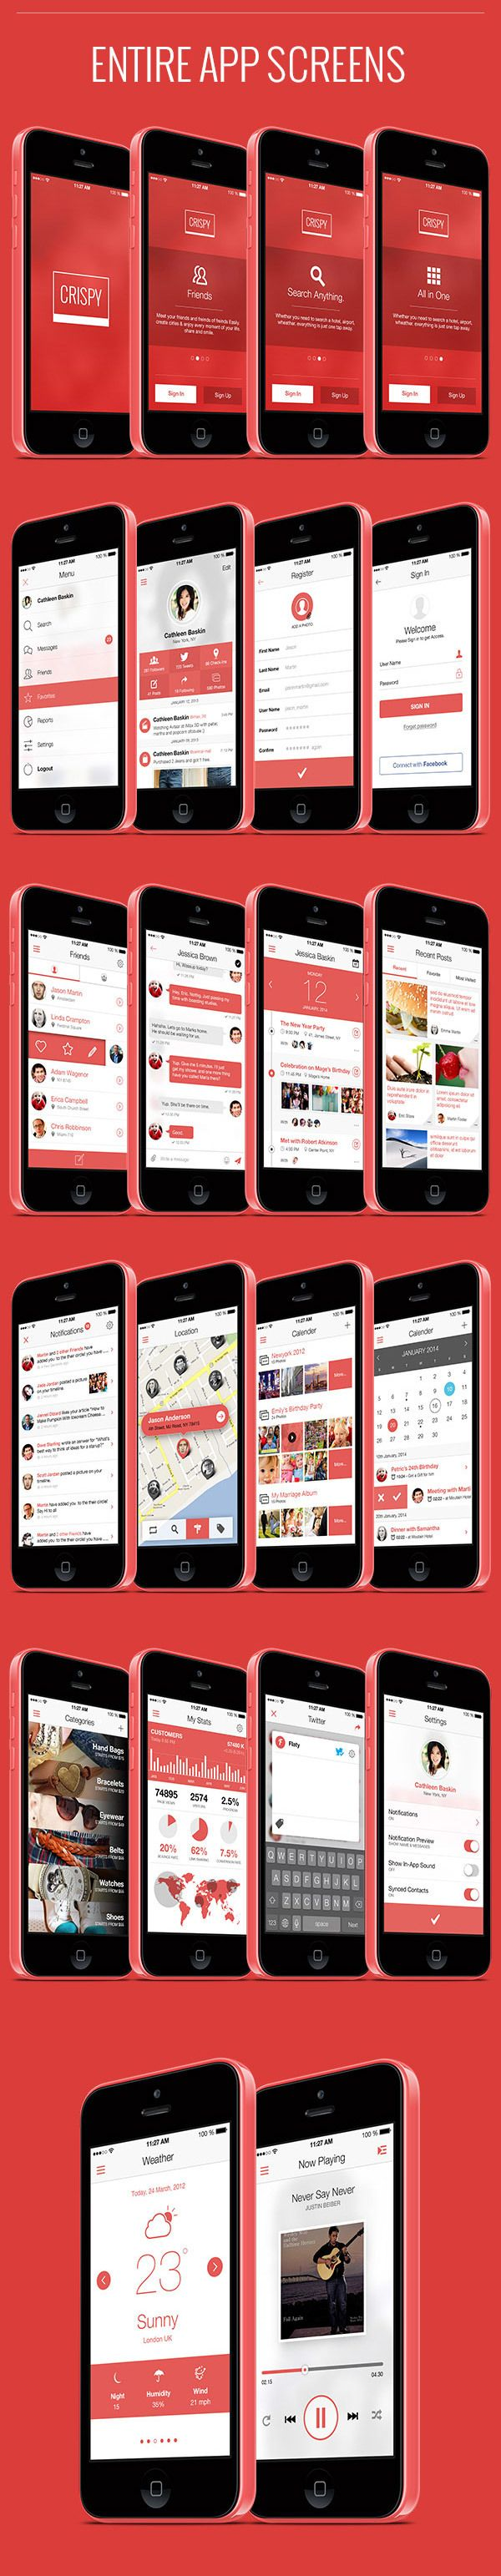 Crispy - A Fresh & Flat Mobile Ui Design by Bouncy Studio, via Behance